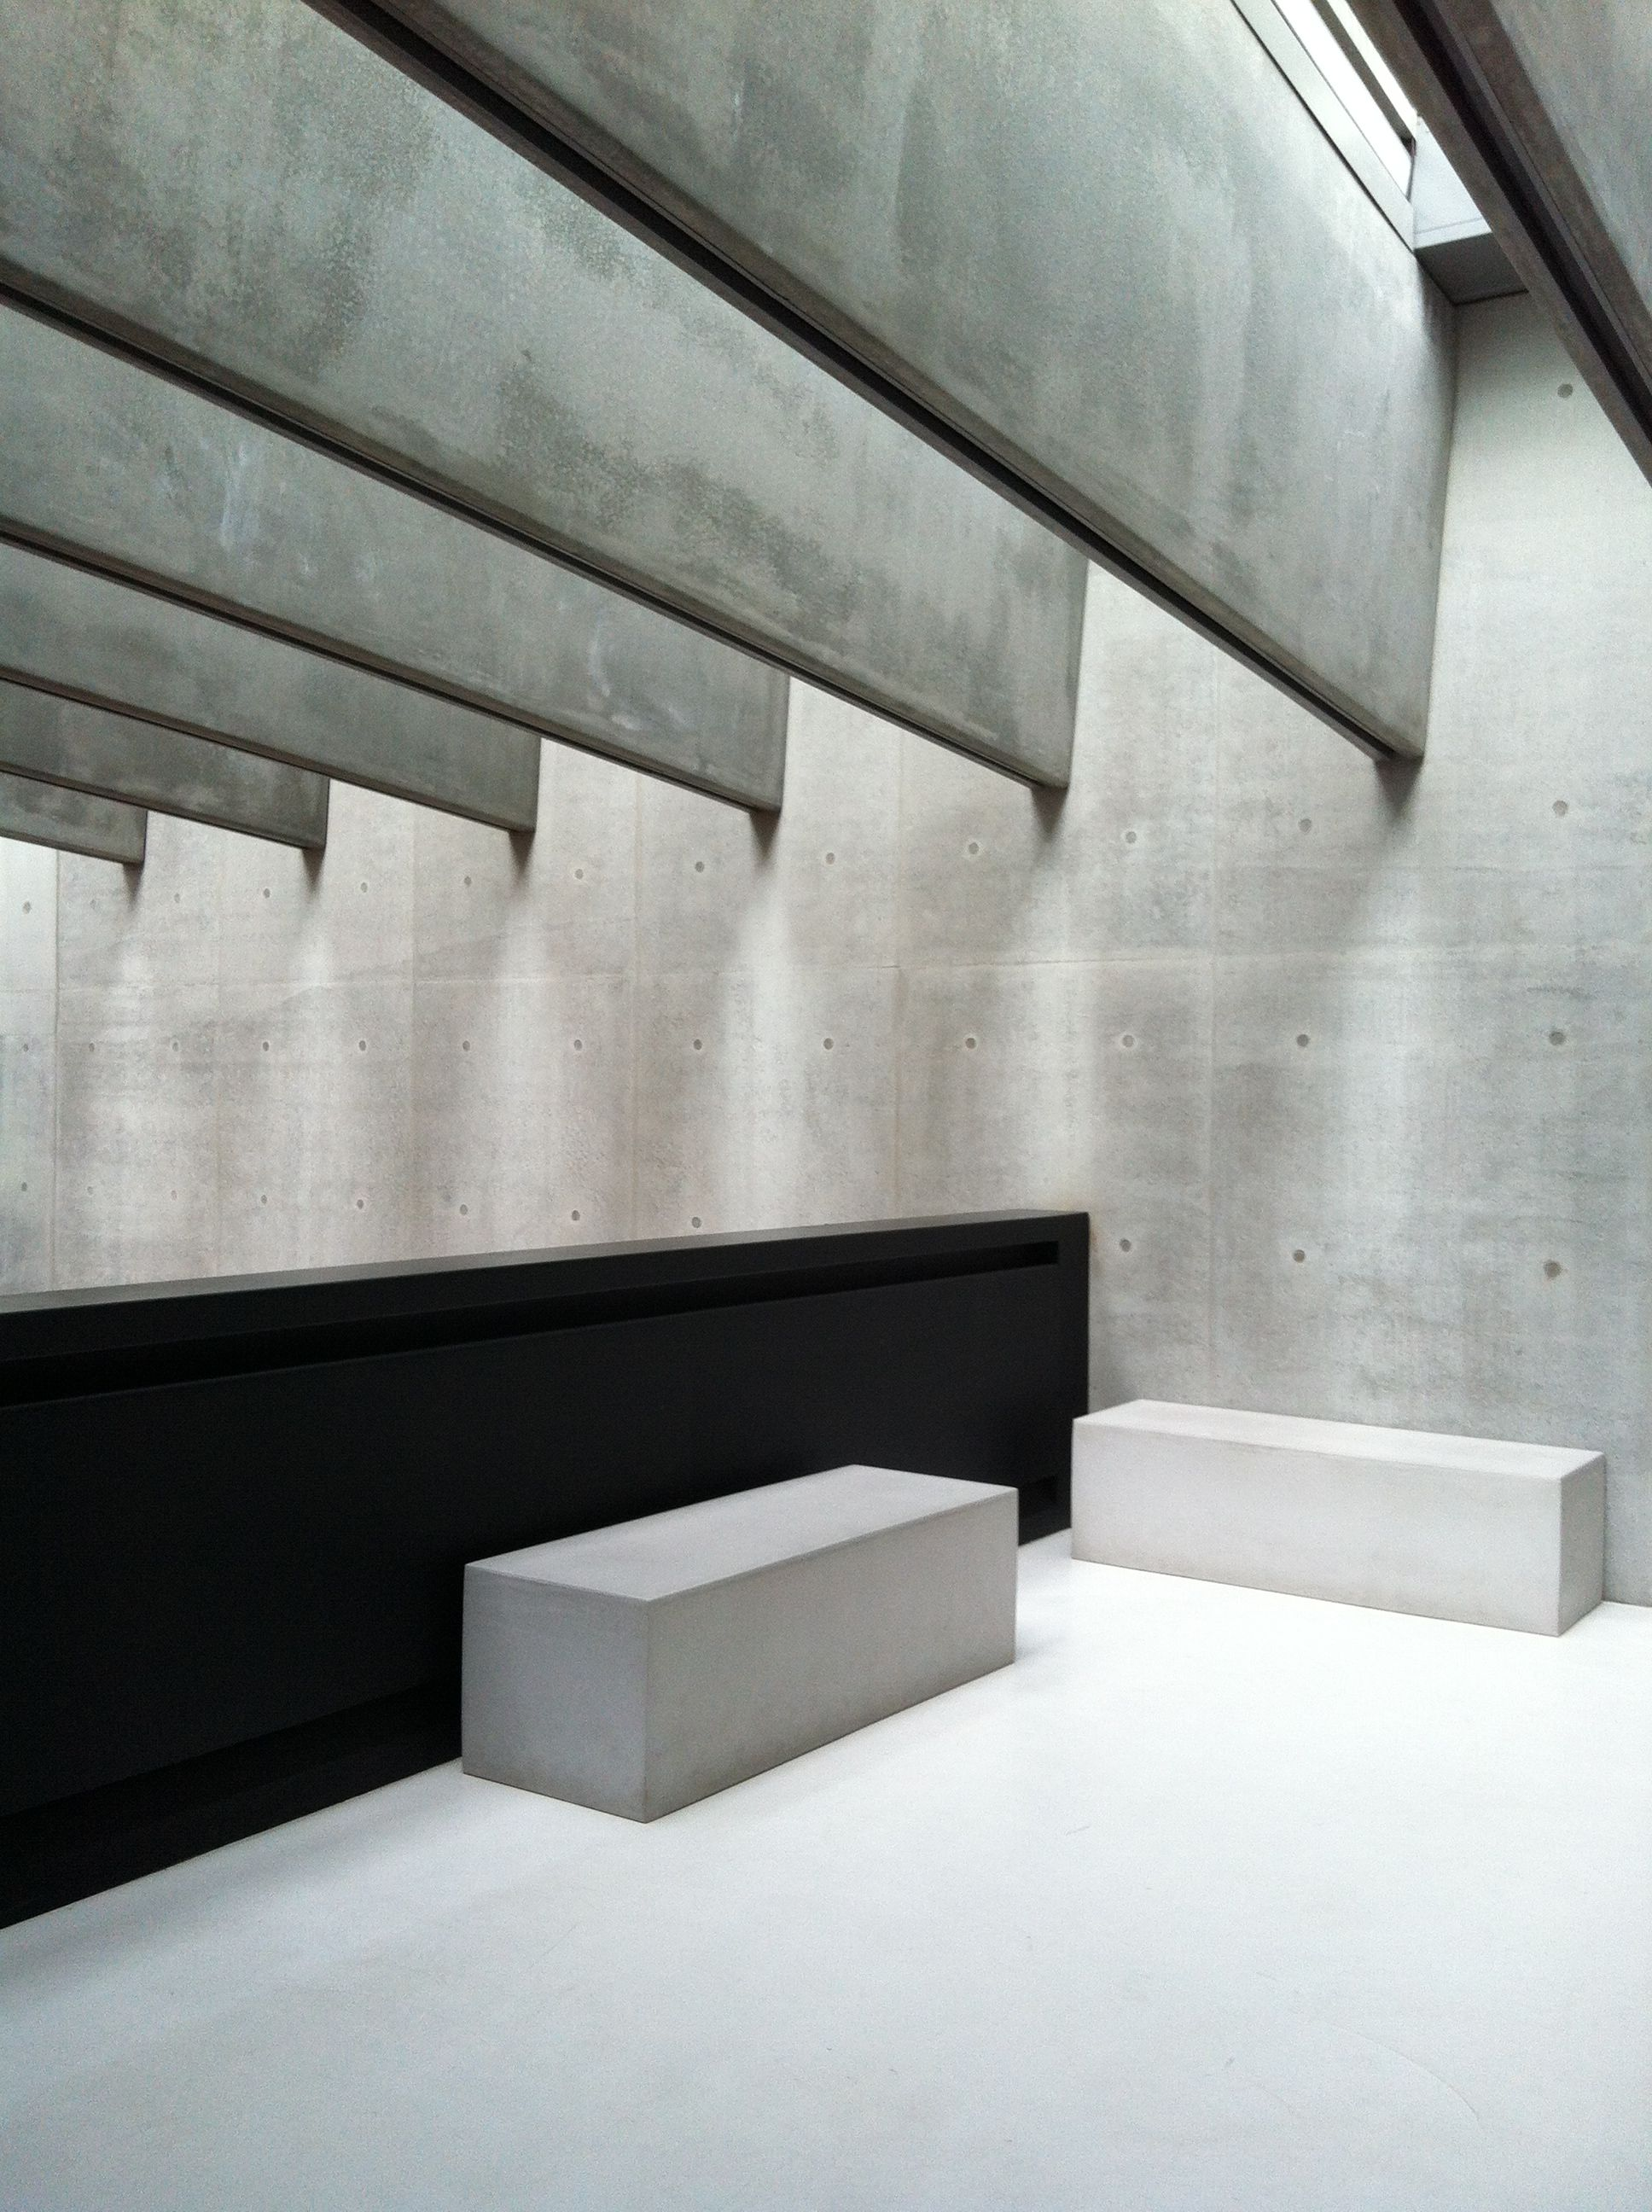 Massive concrete beams bench Perfect in